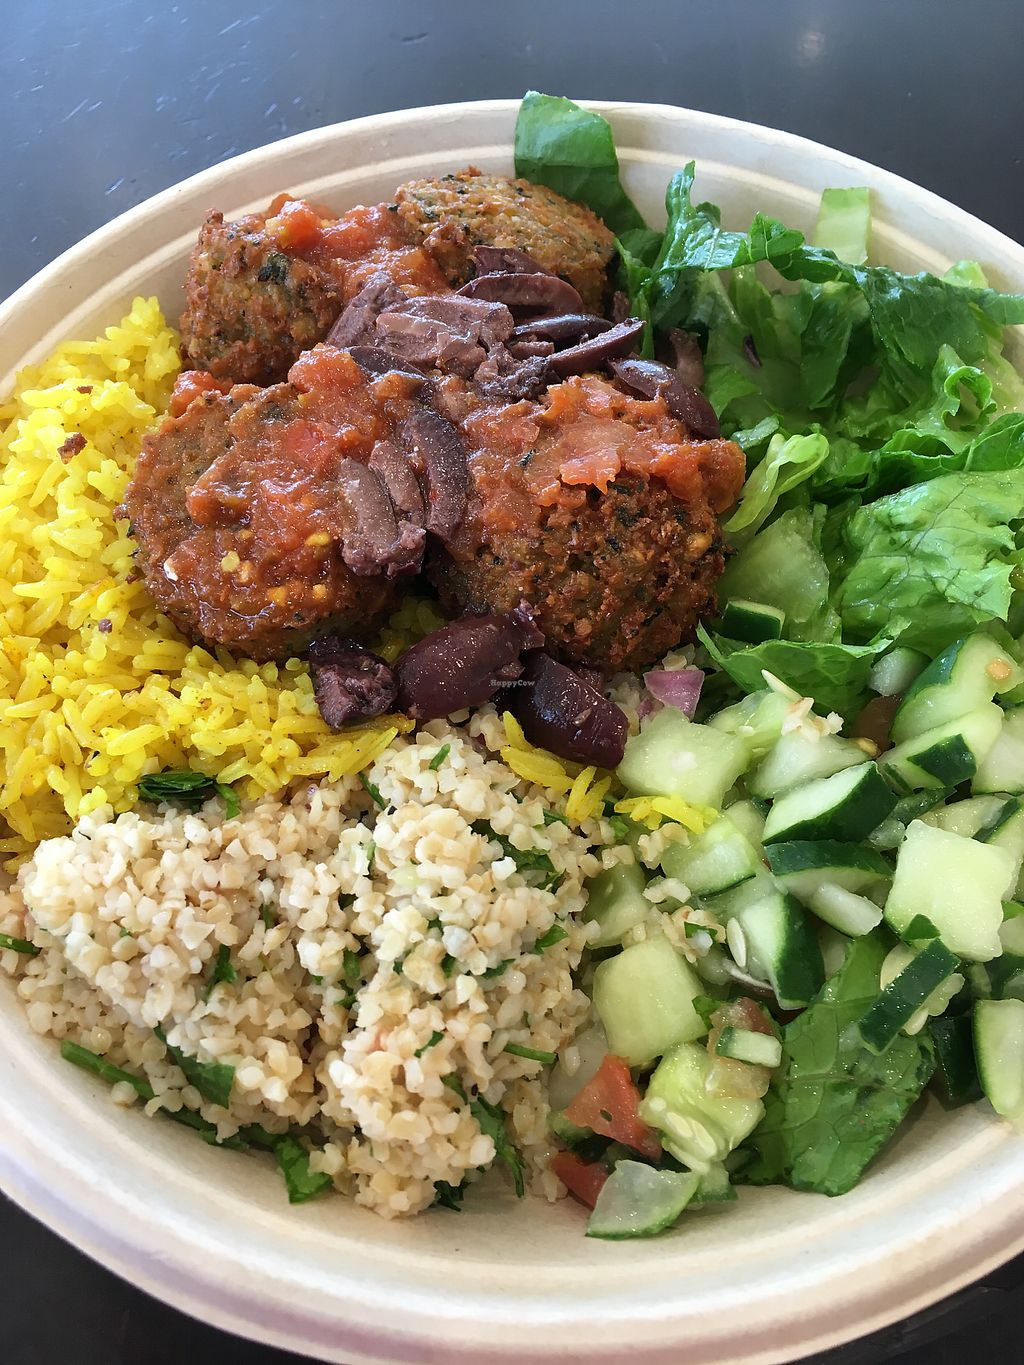 "Photo of Garbanzos Mediterranean Grill - Airport  by <a href=""/members/profile/AliciaAckerman"">AliciaAckerman</a> <br/>Falafel Plate <br/> July 10, 2017  - <a href='/contact/abuse/image/69443/278784'>Report</a>"